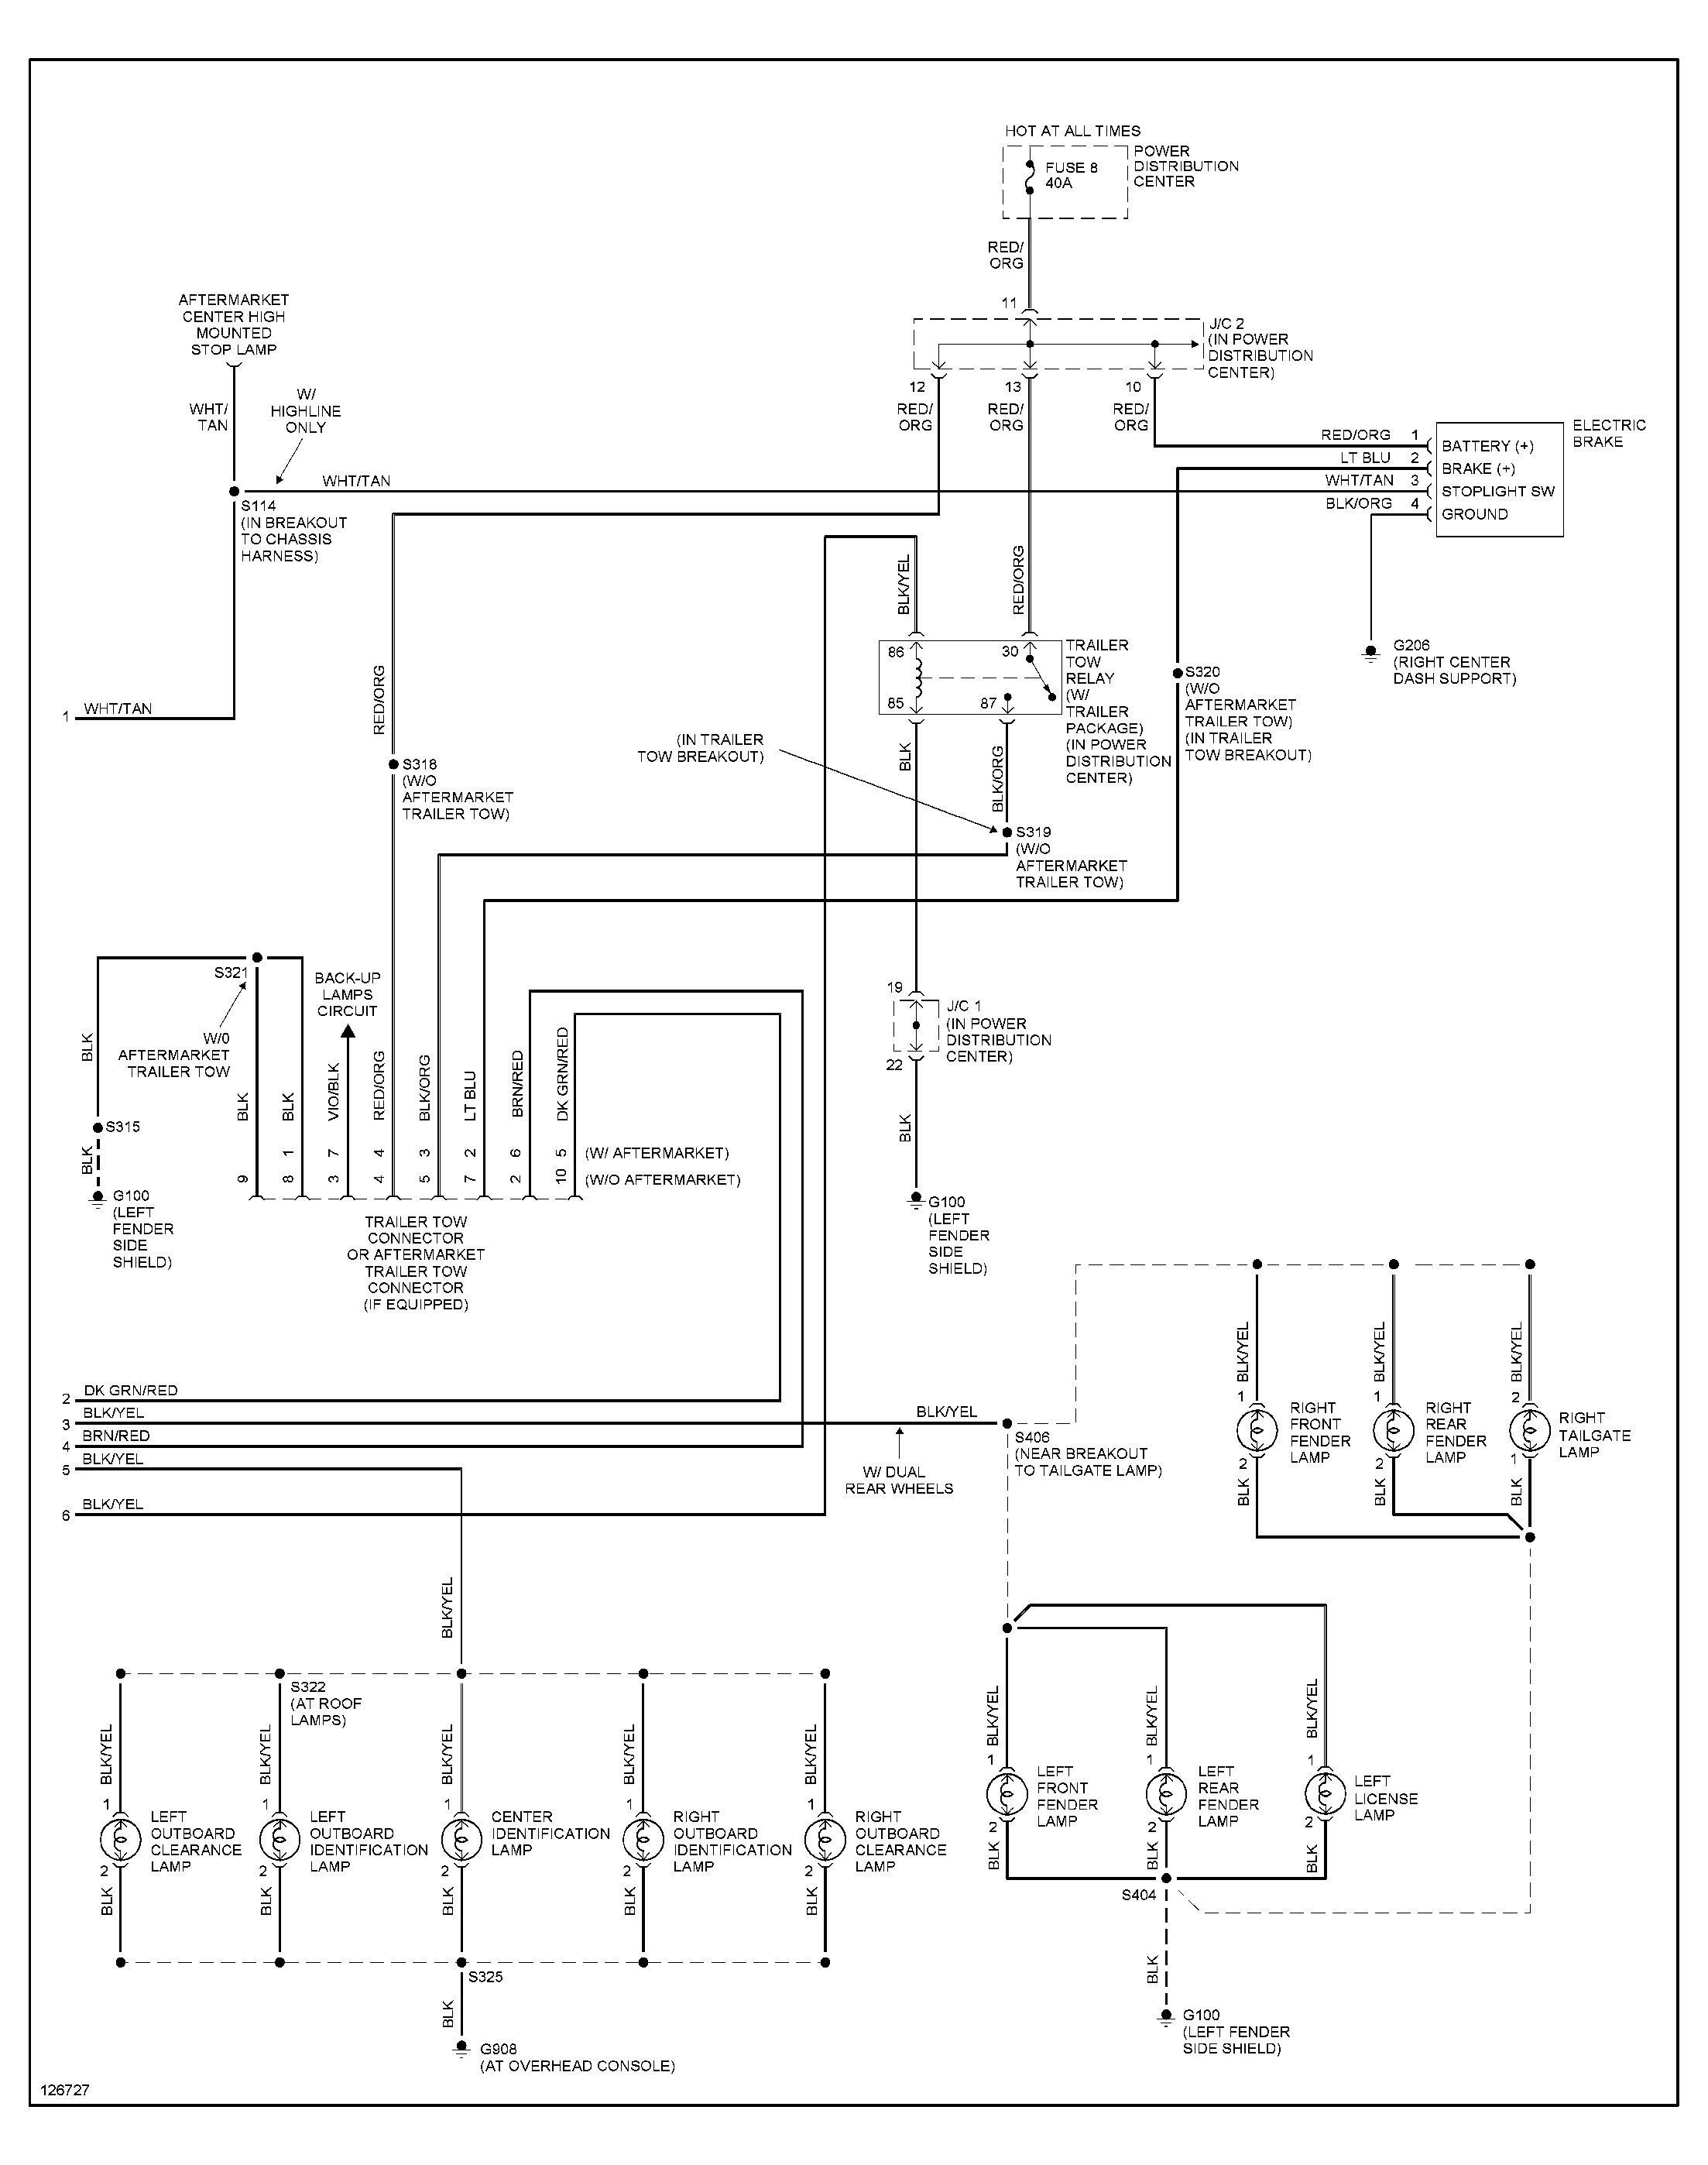 [DIAGRAM] 1988 Chevy 1500 Light Wiring Diagram FULL